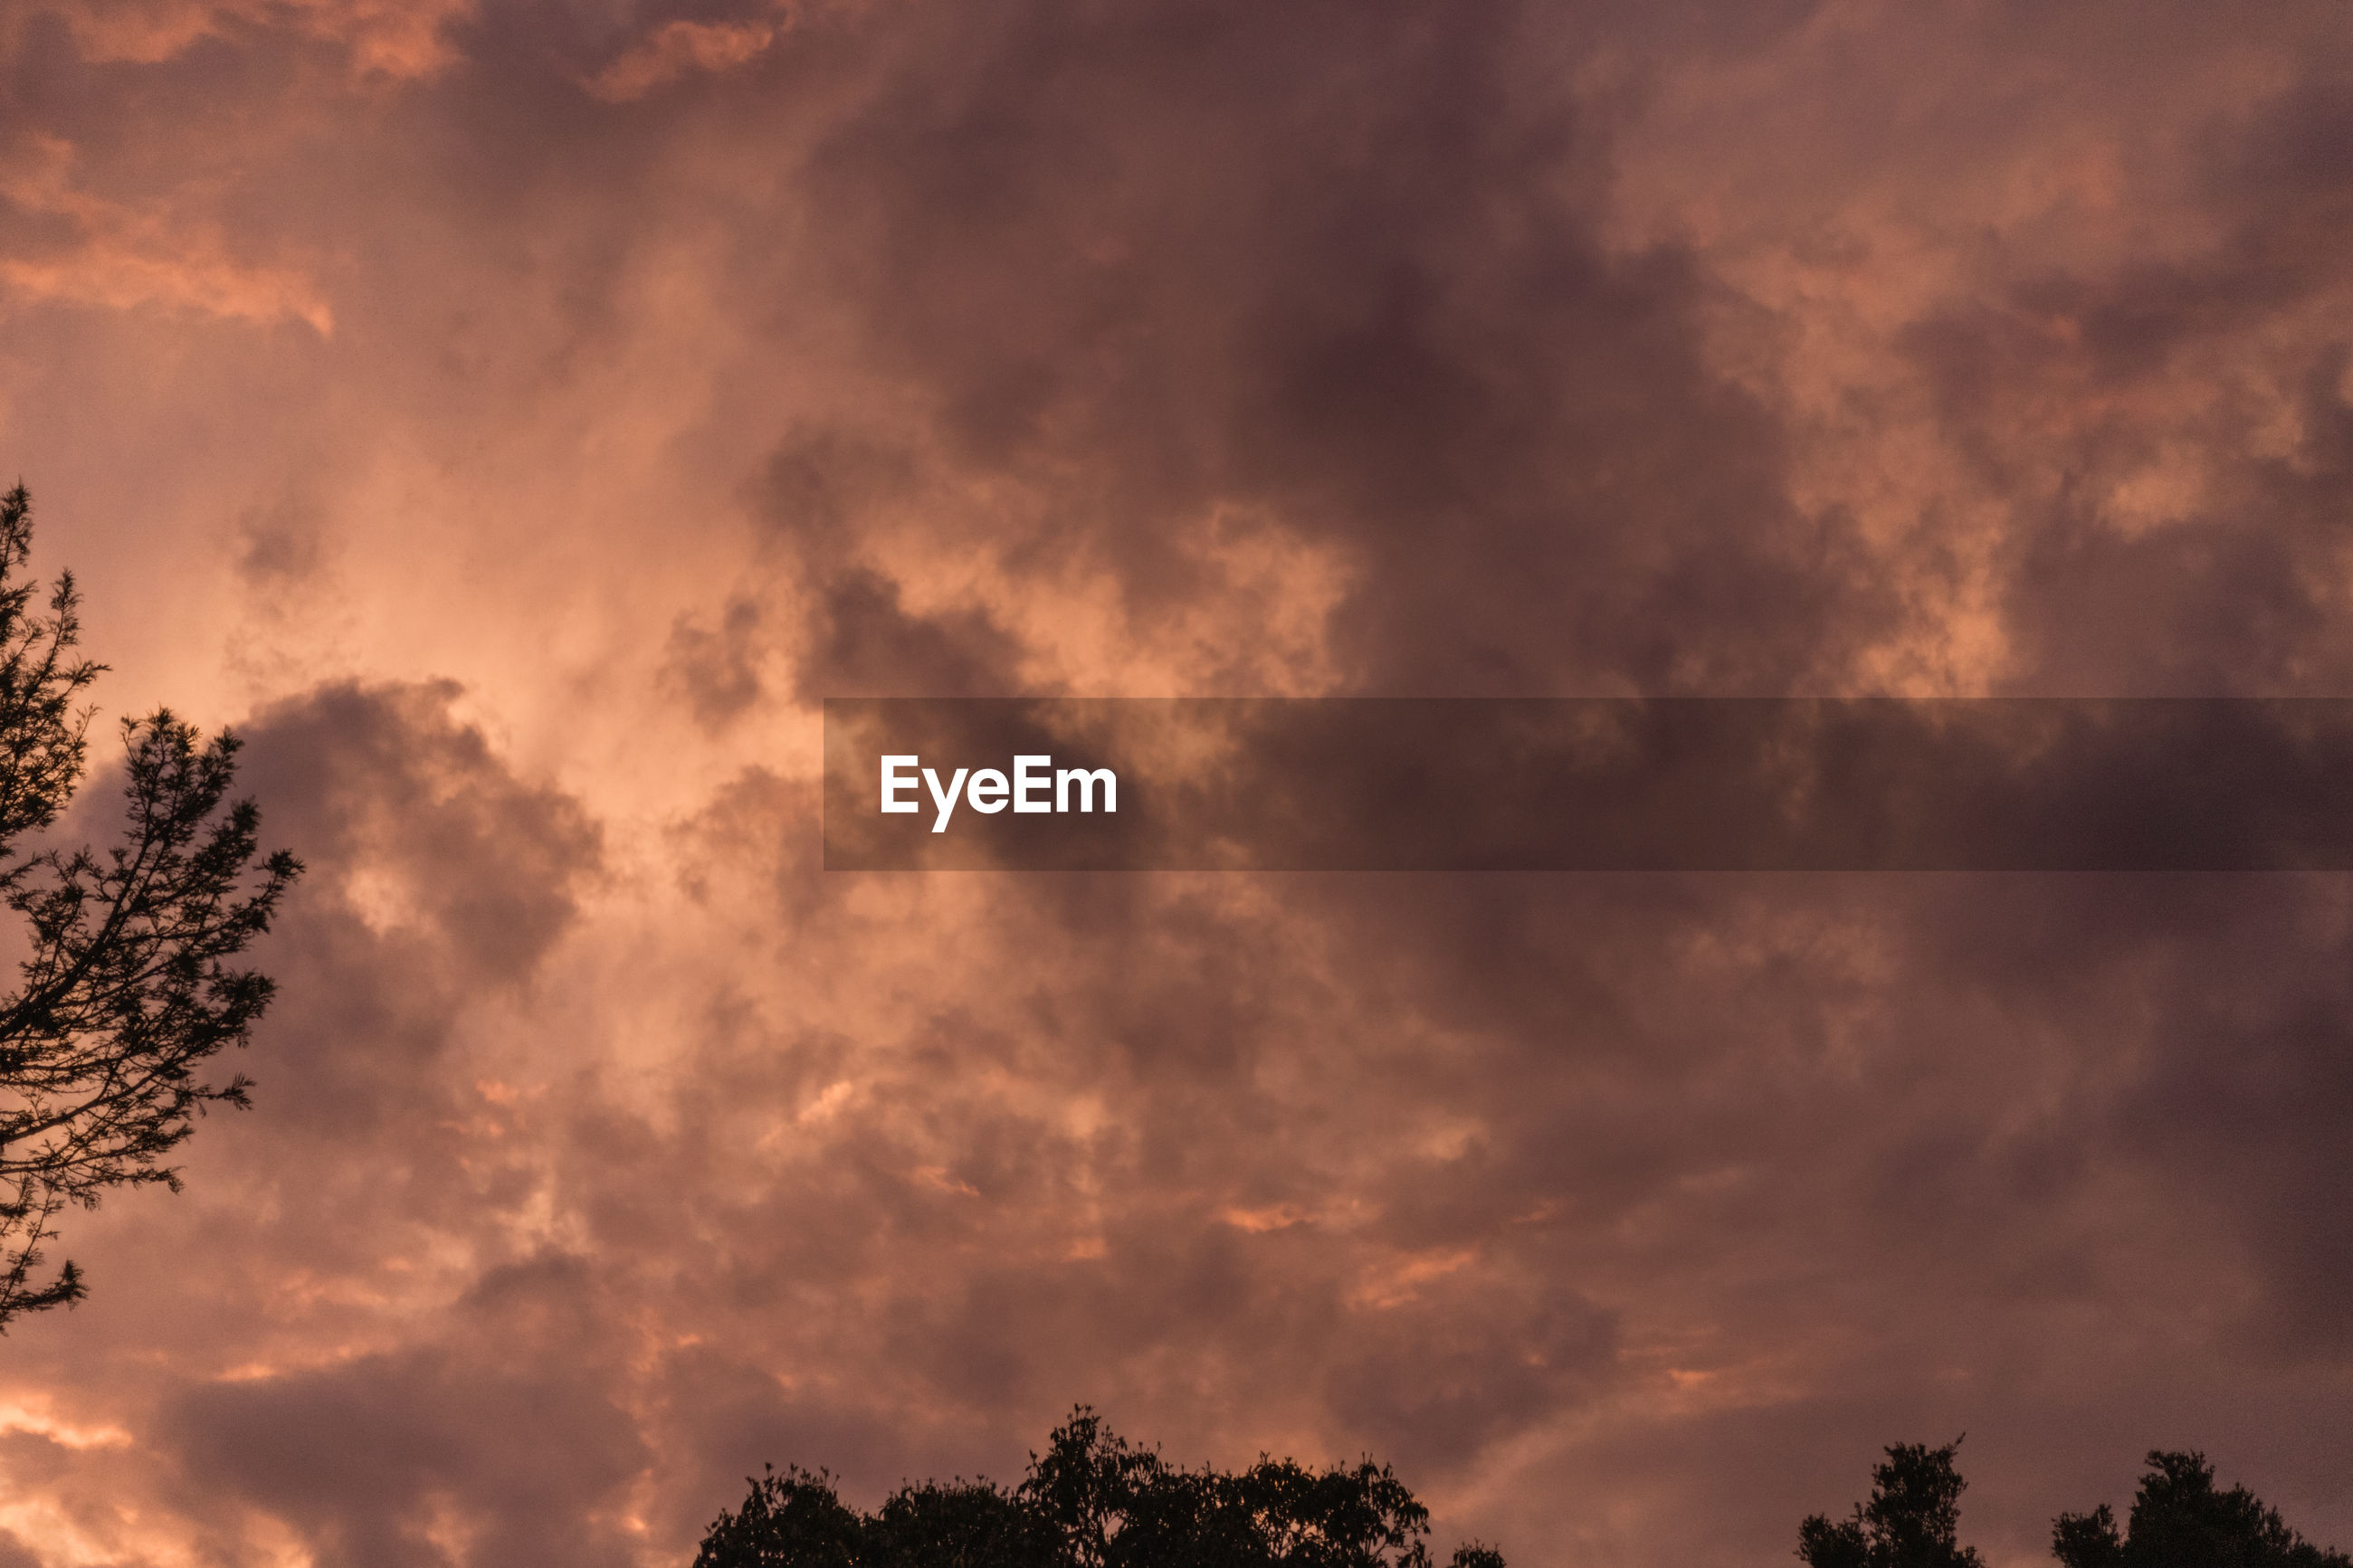 LOW ANGLE VIEW OF TREE AGAINST DRAMATIC SKY DURING SUNSET